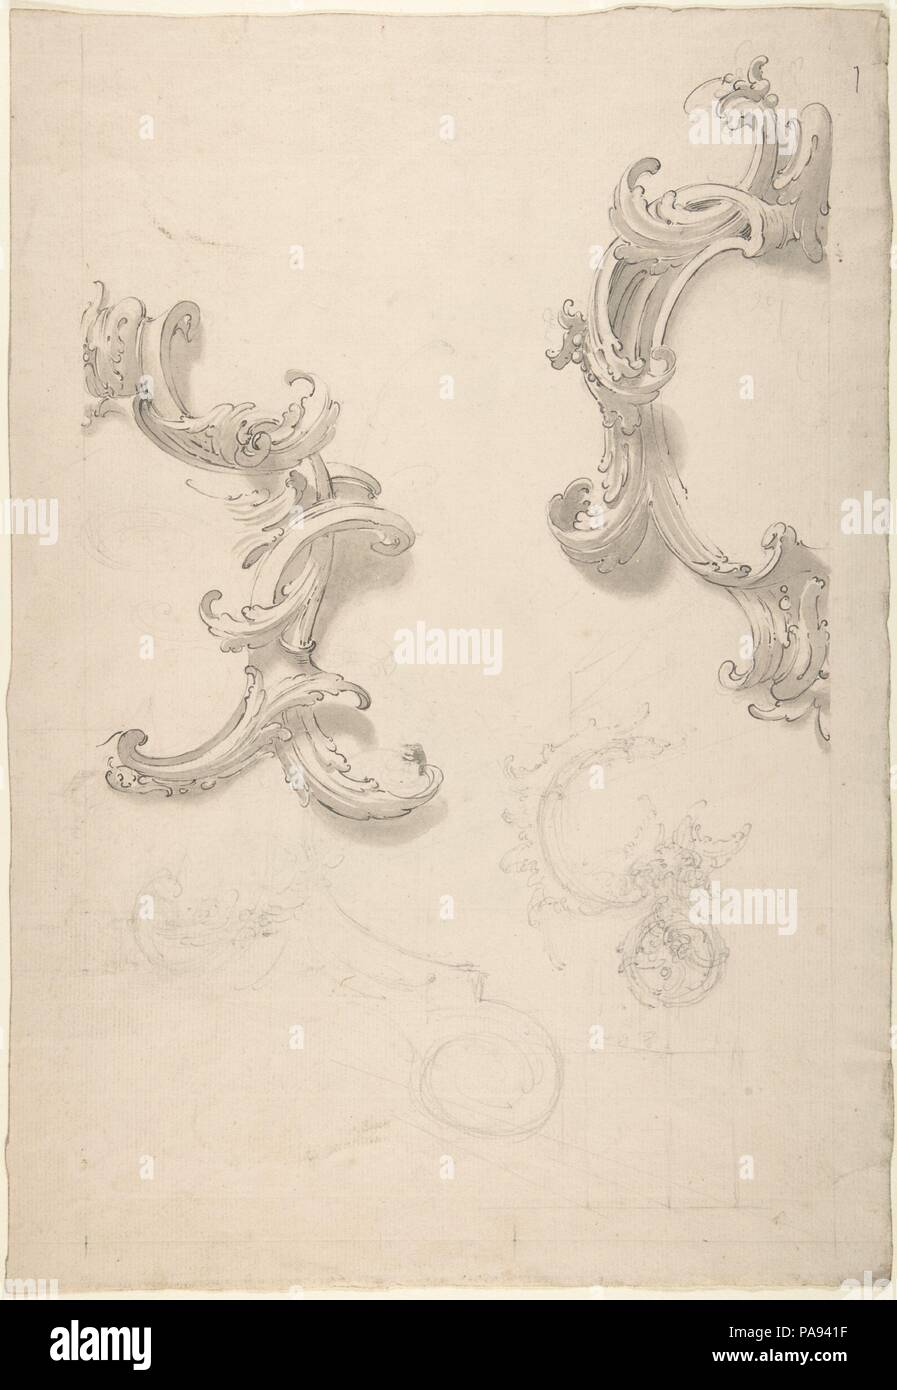 Ornamental Design with Acanthus Leaves (recto), Capital (verso). Artist: Anonymous, Italian, 18th century. Dimensions: 10 x 14-13/16 in. Date: 18th century. Museum: Metropolitan Museum of Art, New York, USA. - Stock Image